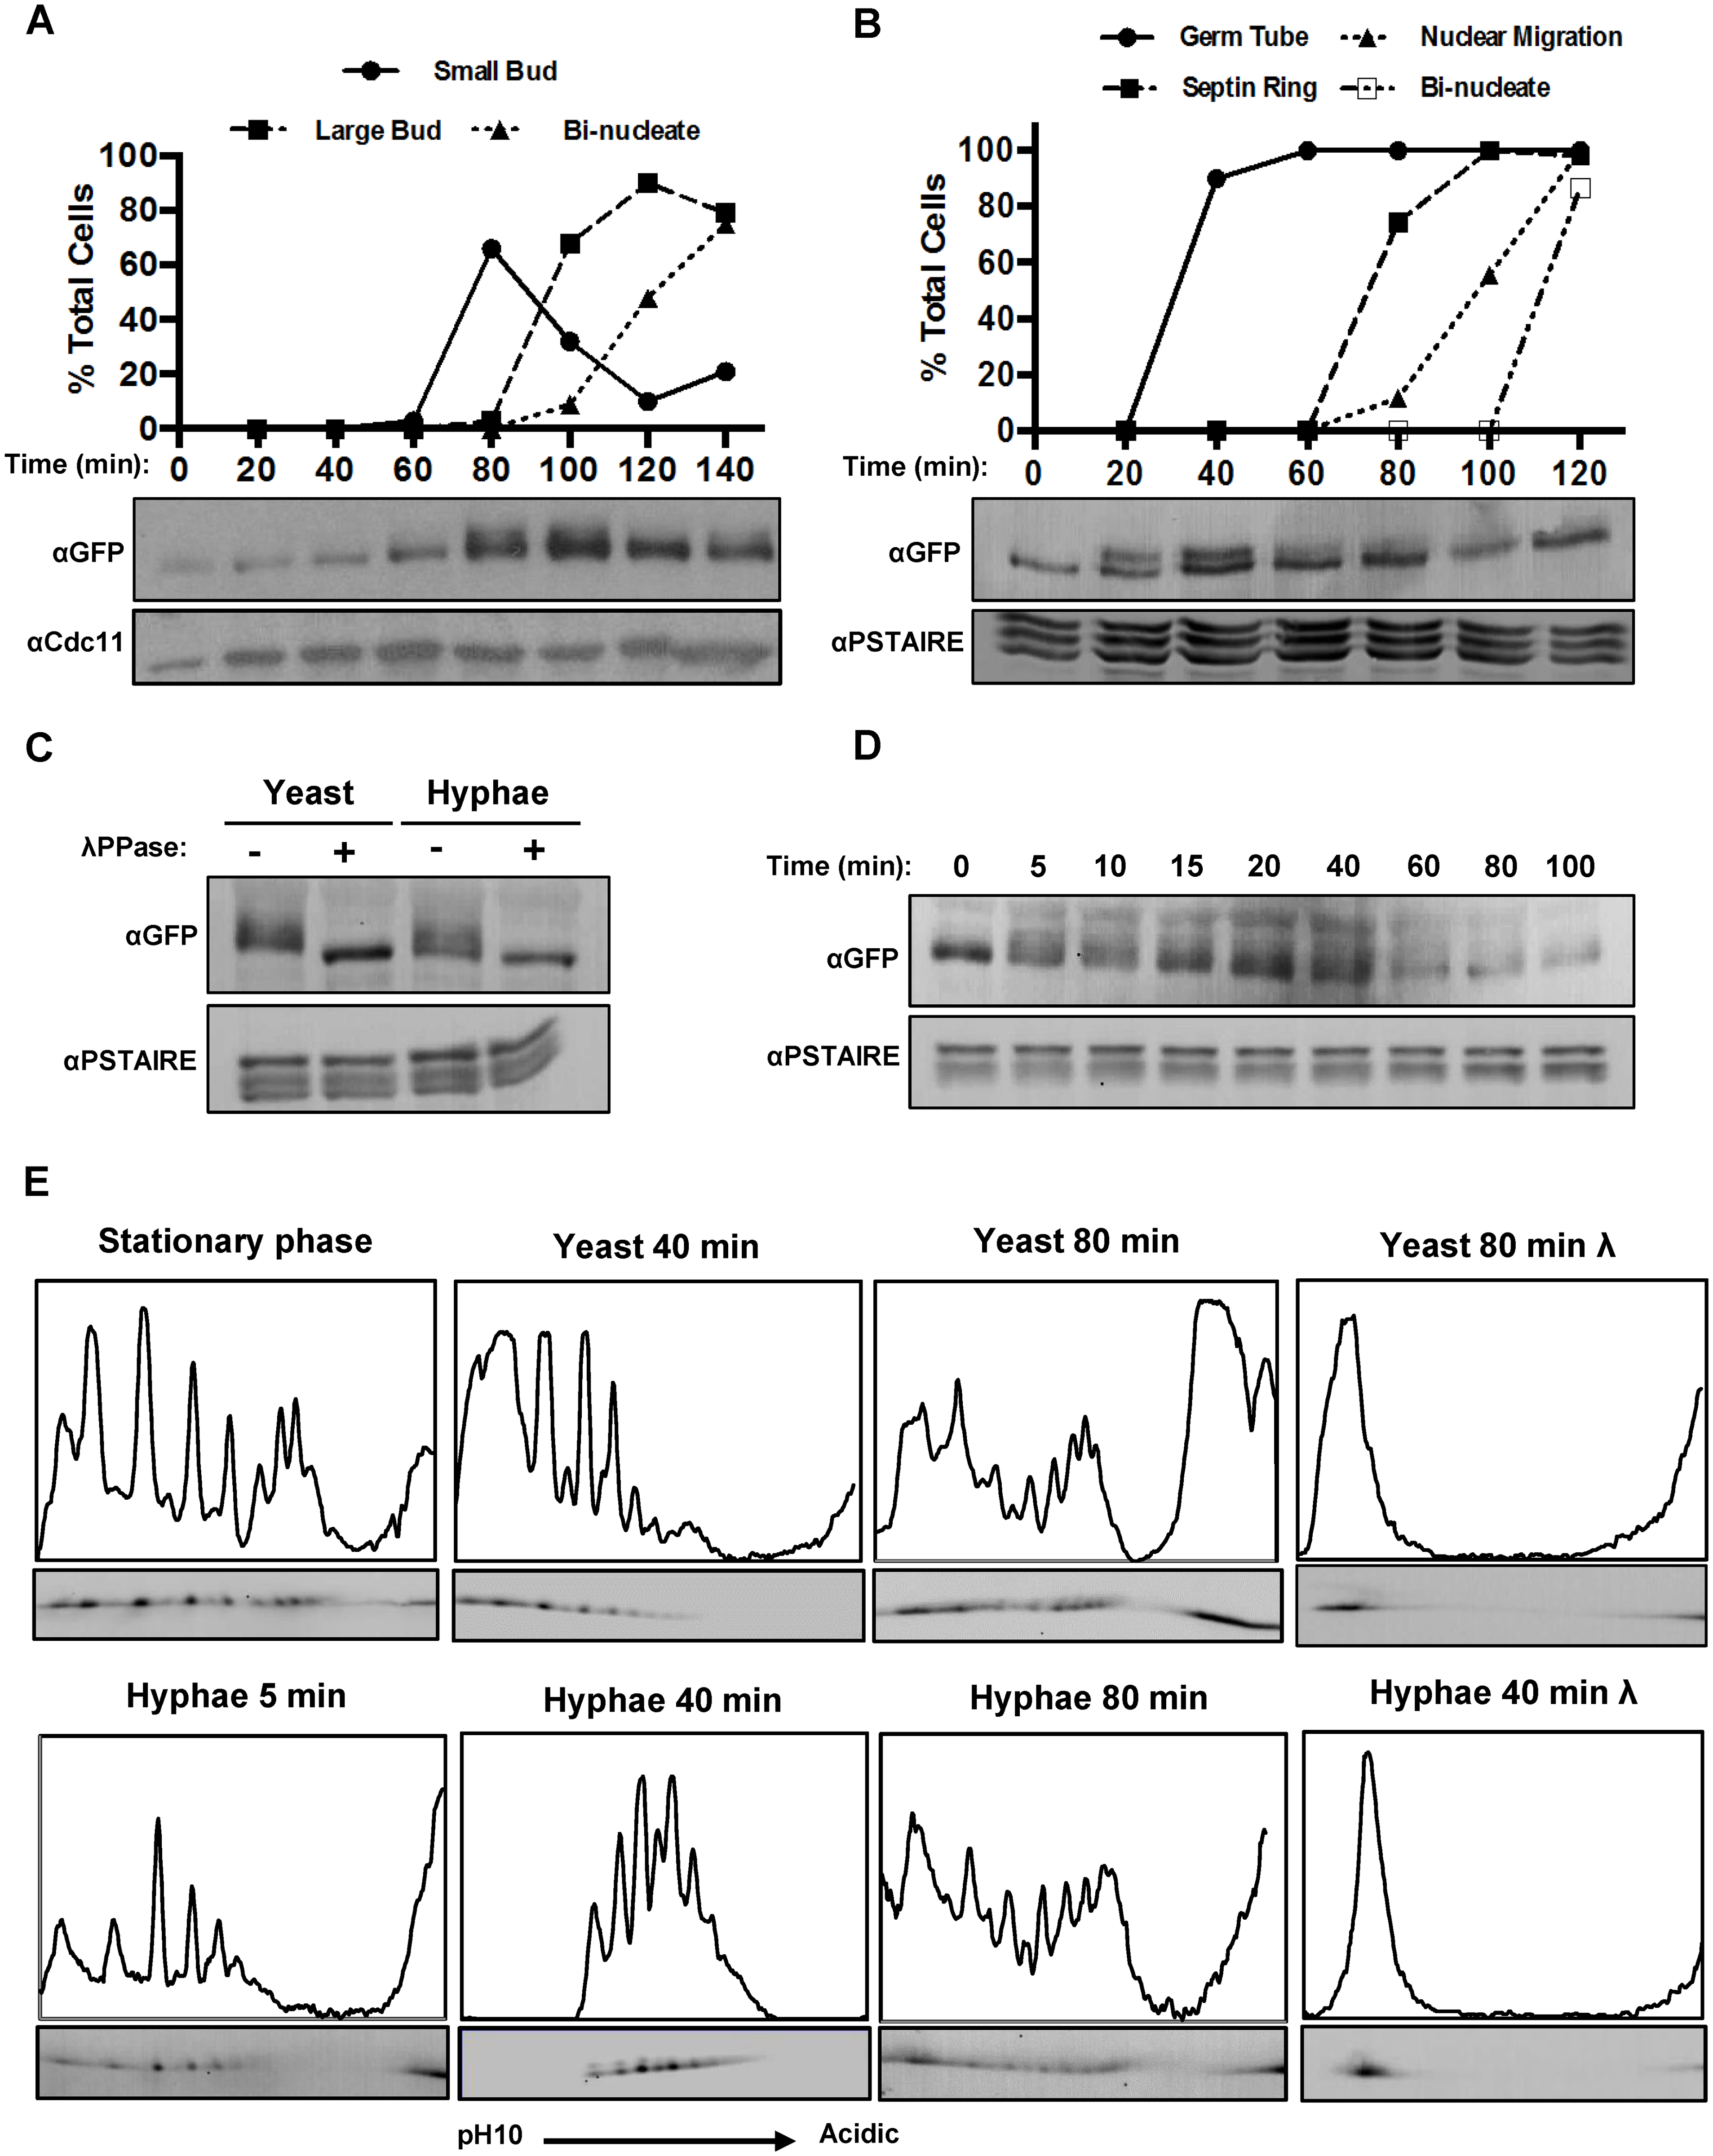 Fkh2 is differentially phosphorylated between yeast and hyphal growth.